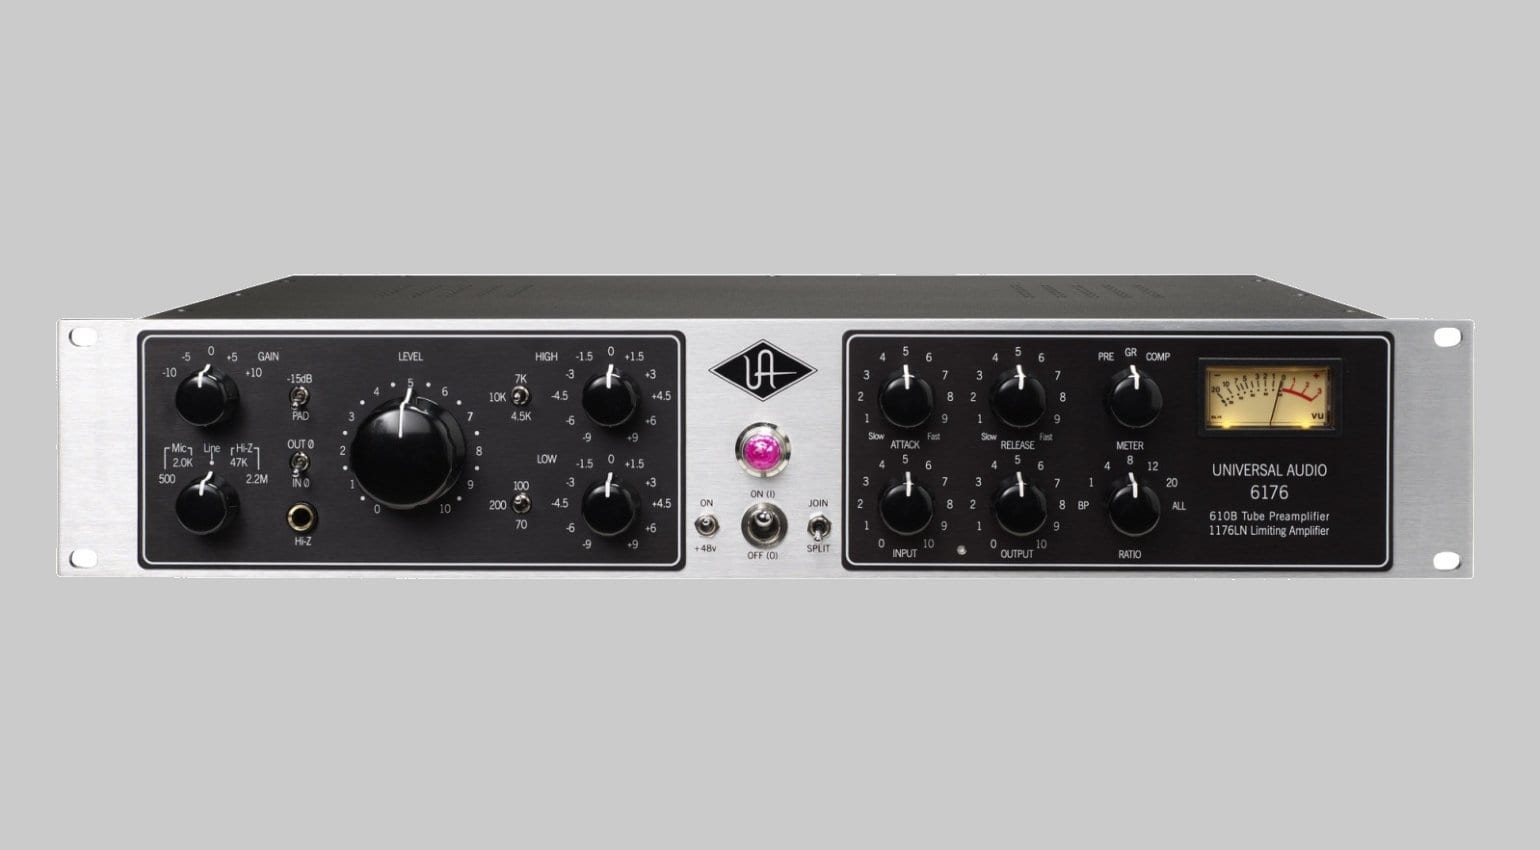 Get a free UAD-2 Quad DSP Accelerator when you purchase a UA